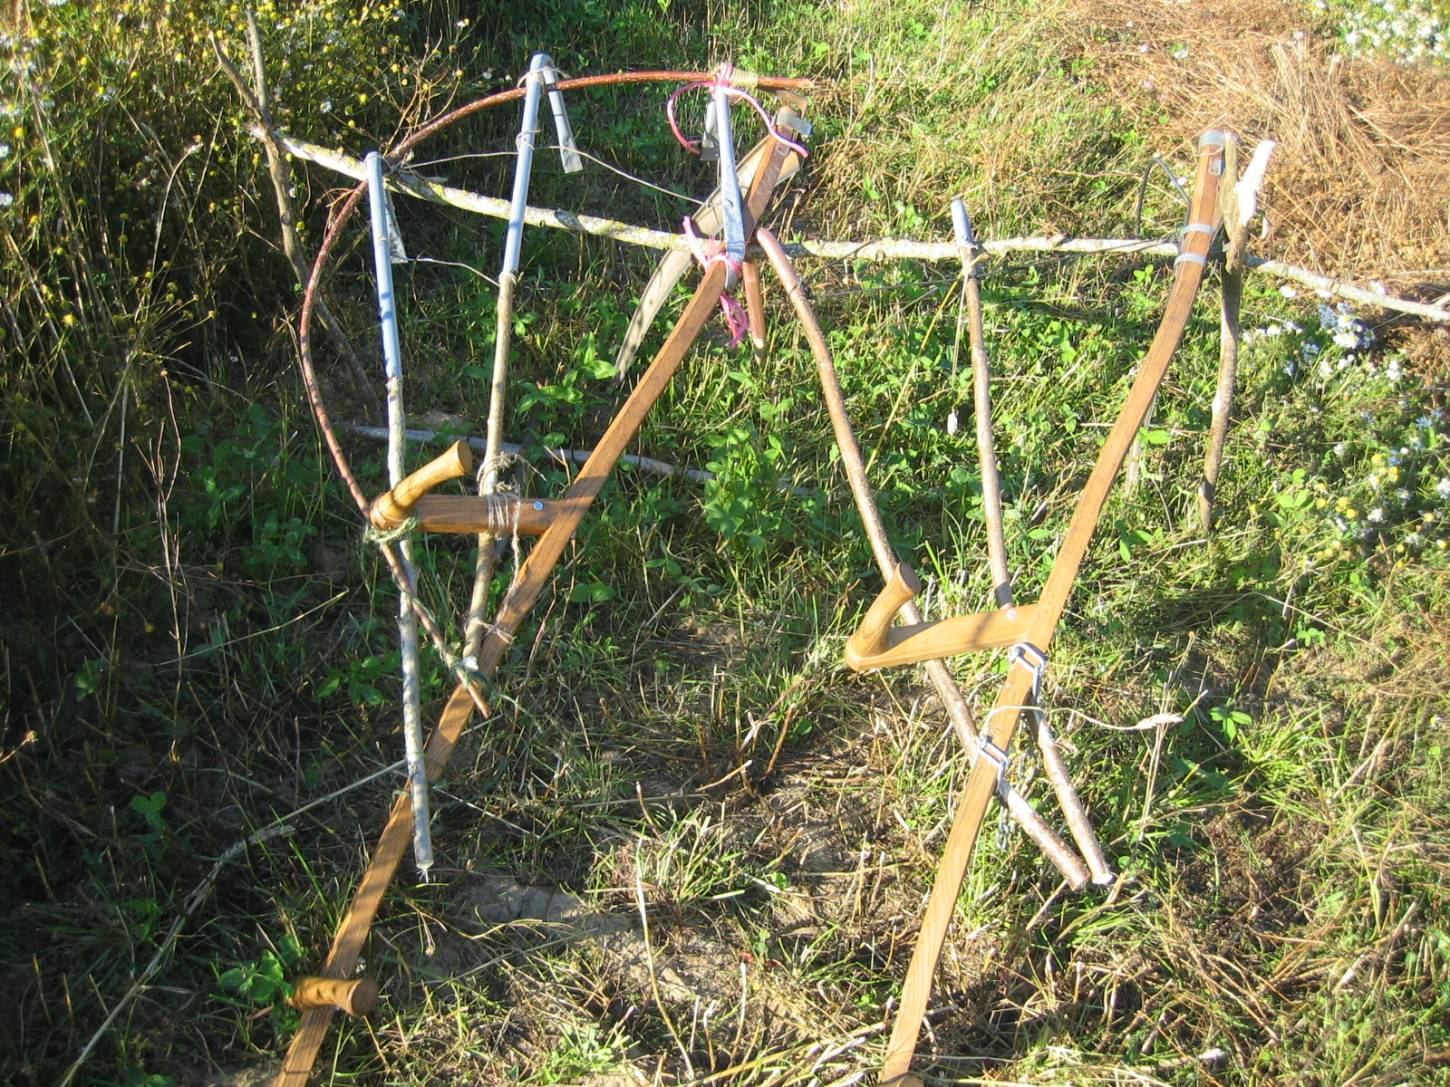 WoWo manual harvest - Steven and Petra's improvised scythe wheat cradle next to Stephen Simpson model on scythe rack - 7:26pm&nbsp;8<sup>th</sup>&nbsp;Aug.&nbsp;'15